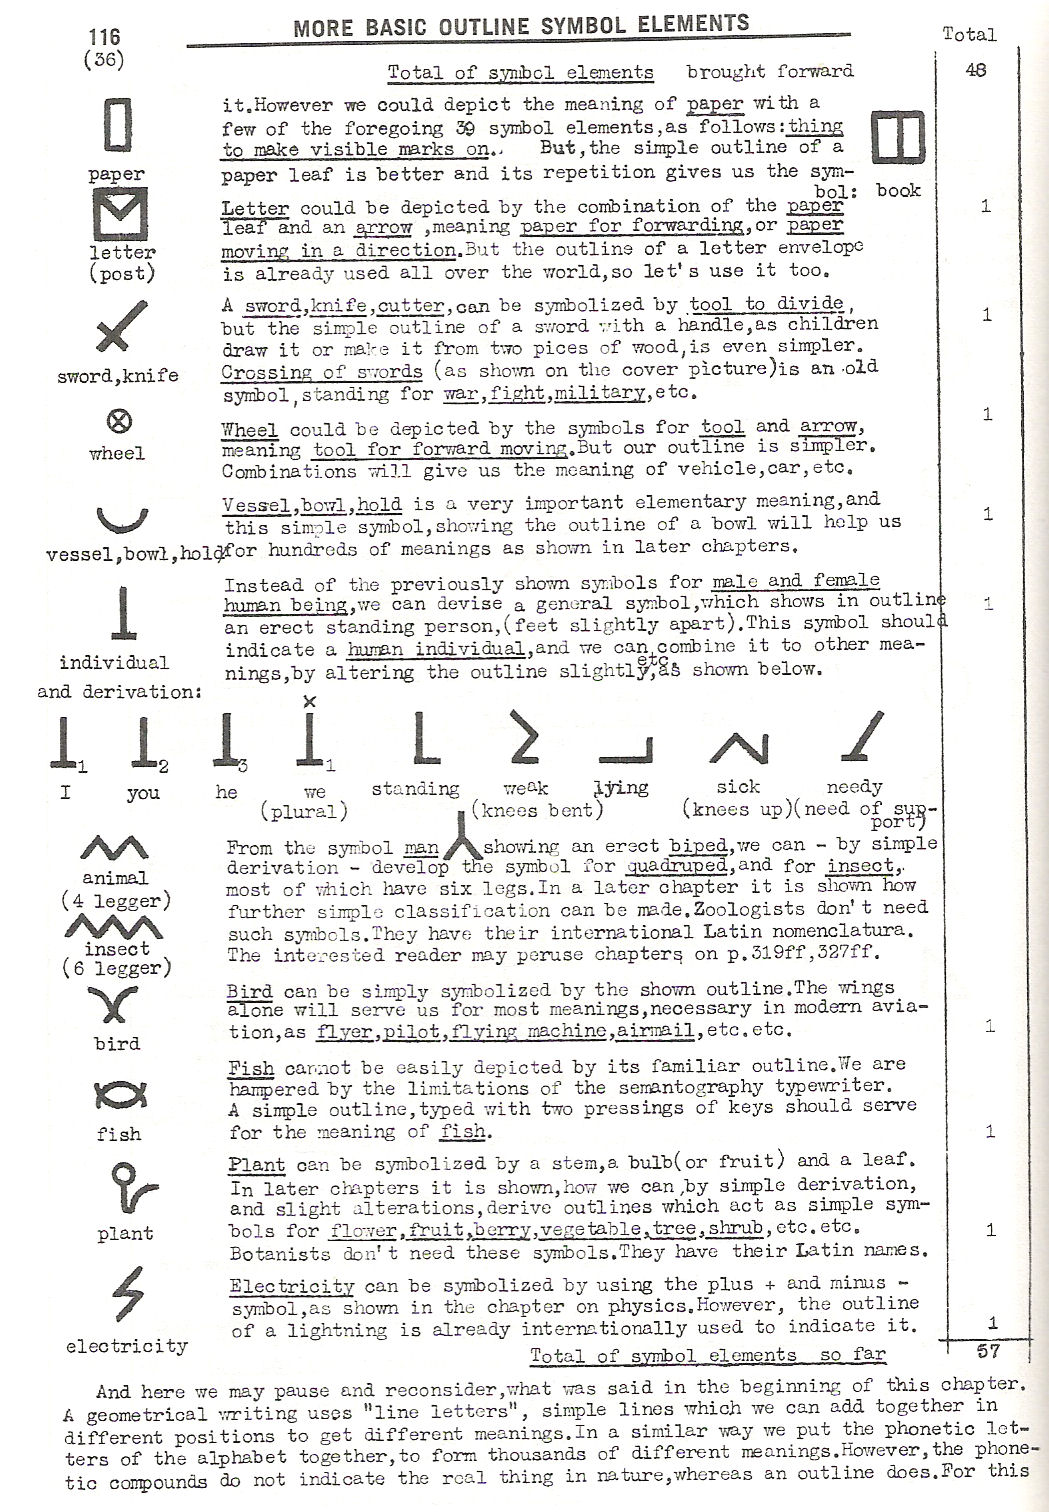 Meaning of the symbol gallery symbol and sign ideas pages 81 120 120 list of basic symbol elements buycottarizona biocorpaavc